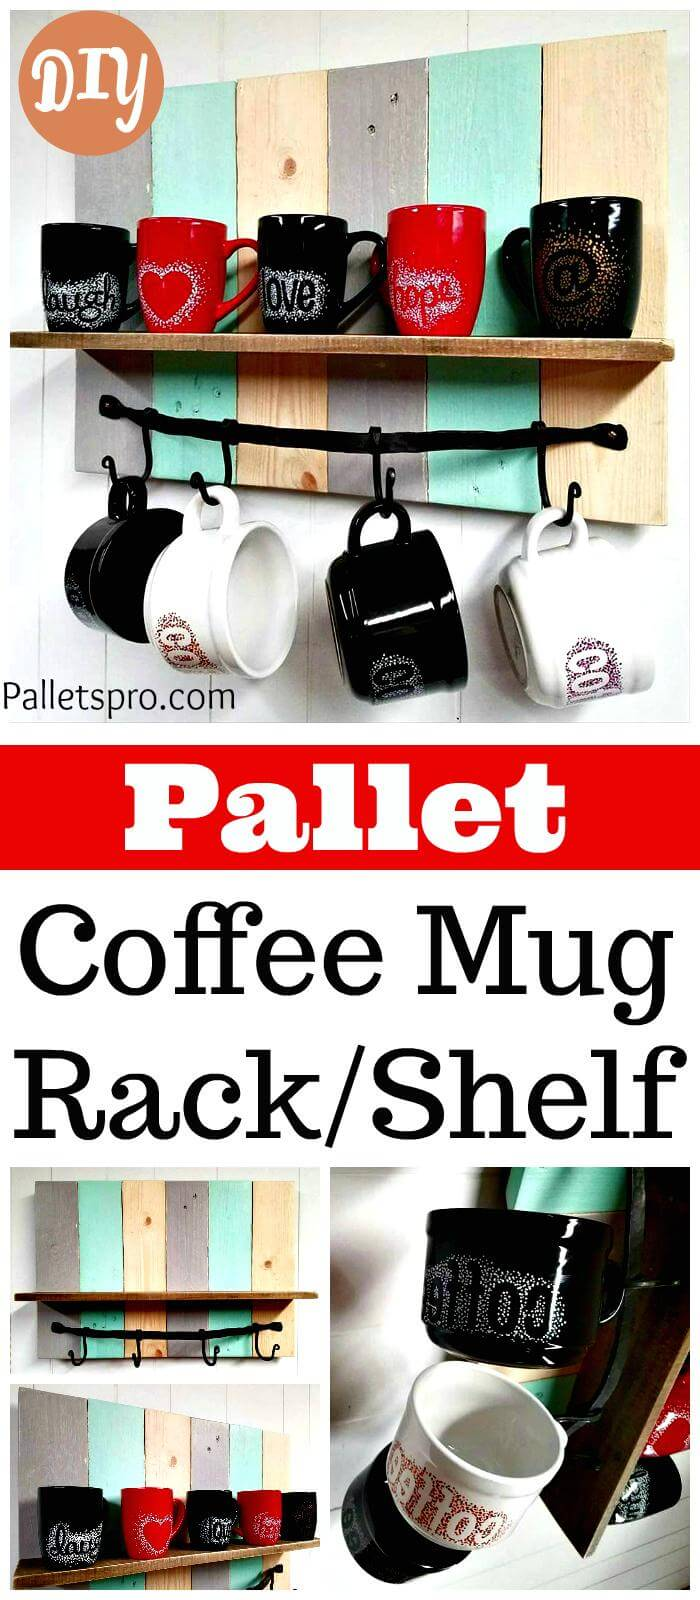 DIY Pallet Coffee Mug Rack